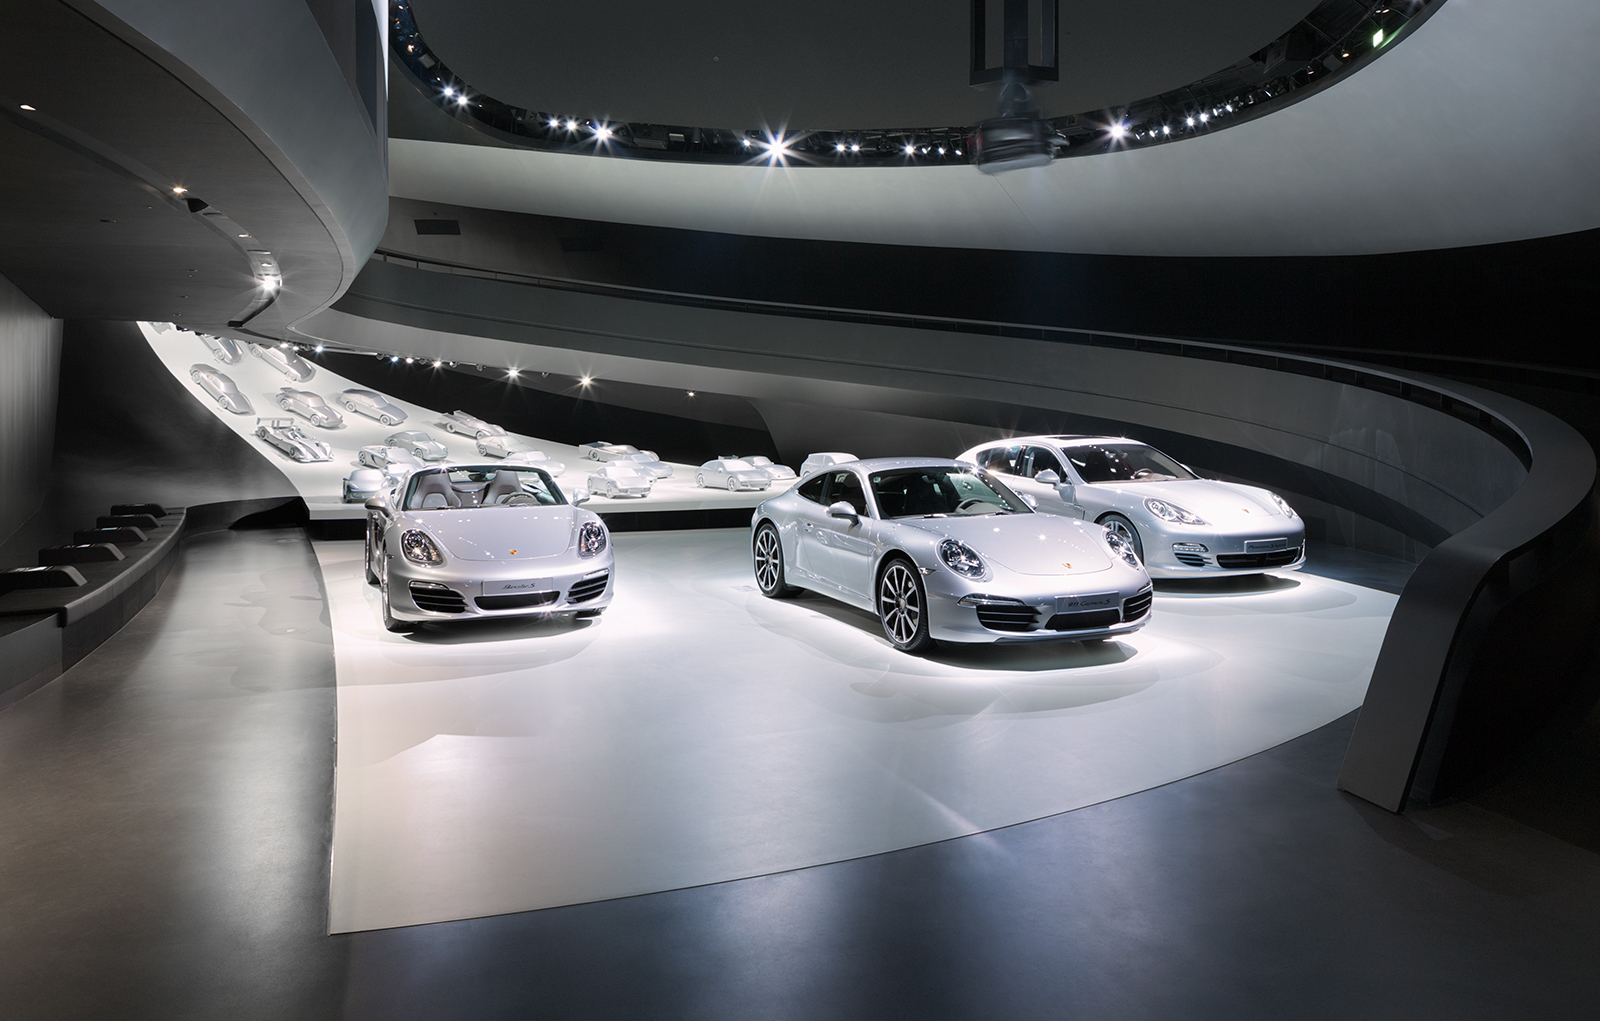 Porsche Pavilion, Wolfsburg, Germany. In the exhibition space, 25 silver vehicle models are on show, including the original Porsche – a 356 No.1 built in 1948.